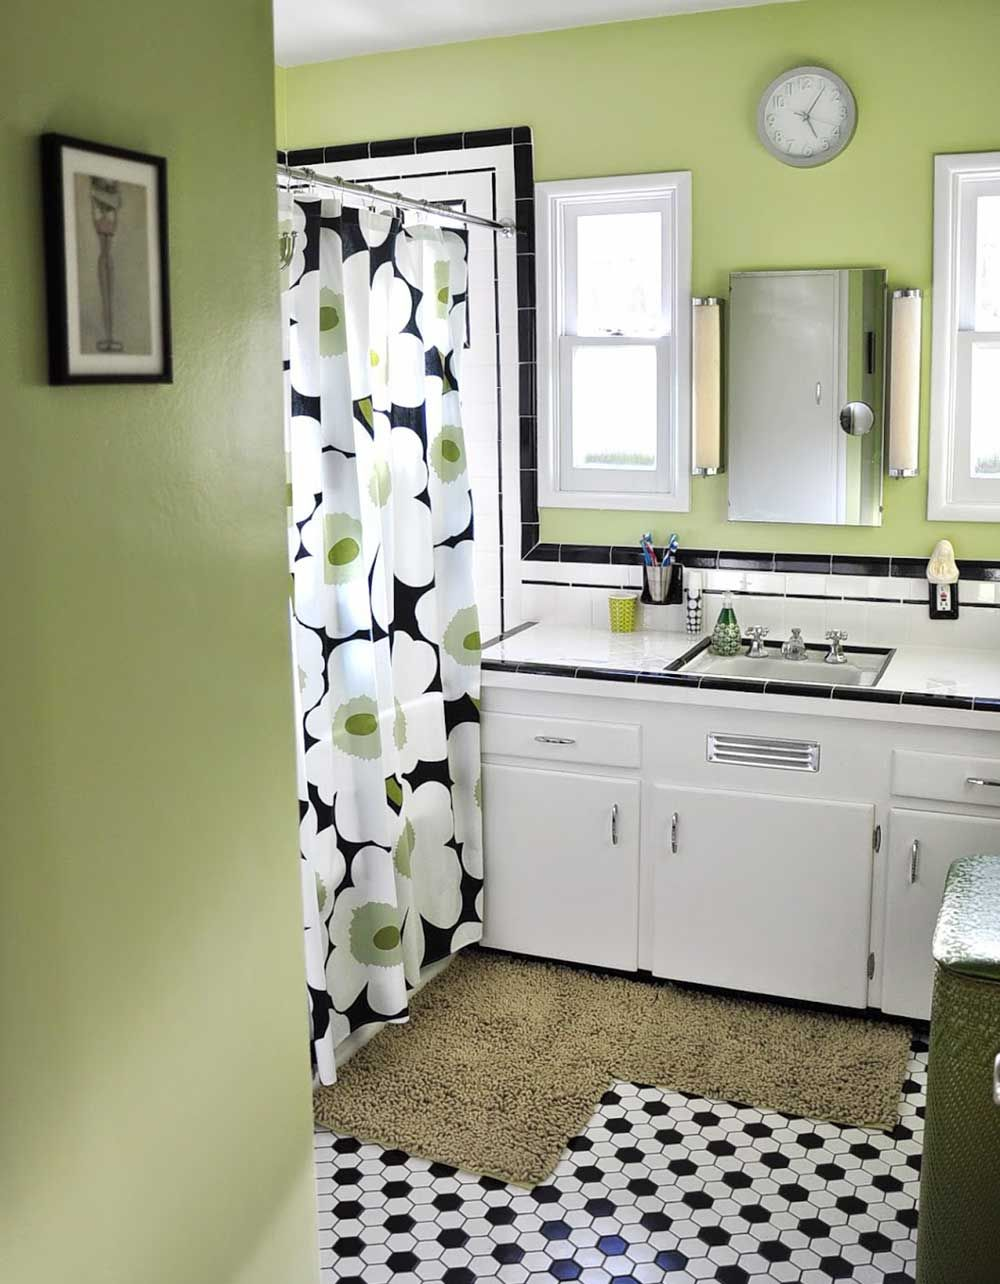 1940 Bathroom Design 1940's Style Bathroom  1940 S Home Where We Completely Gutted The